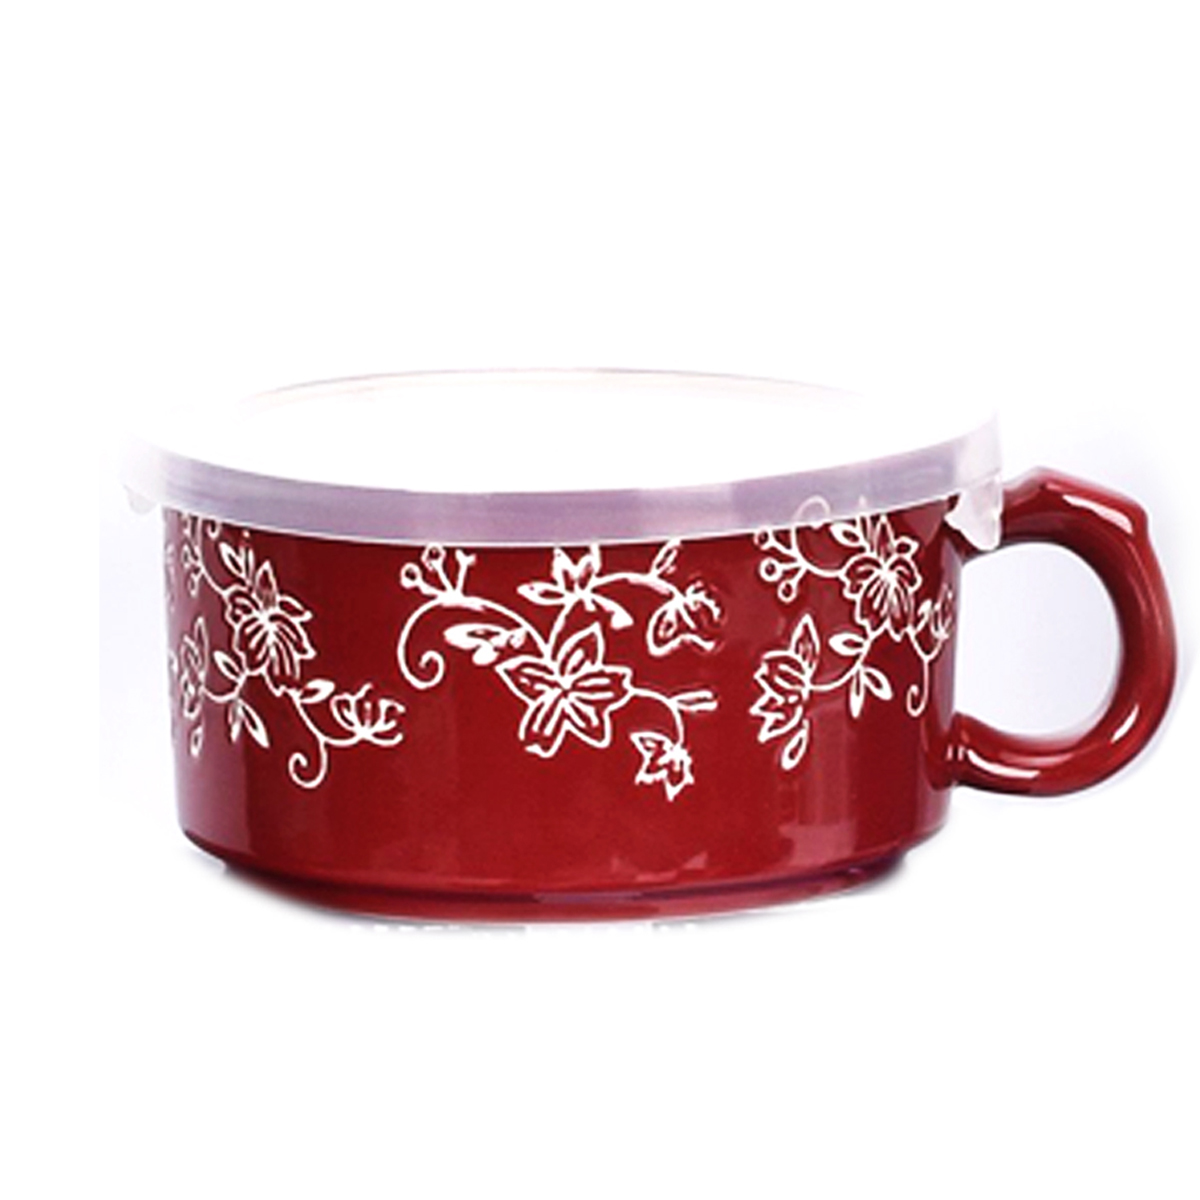 temp-tations® Floral Lace Meal Mug with Gift Box – Cranberry